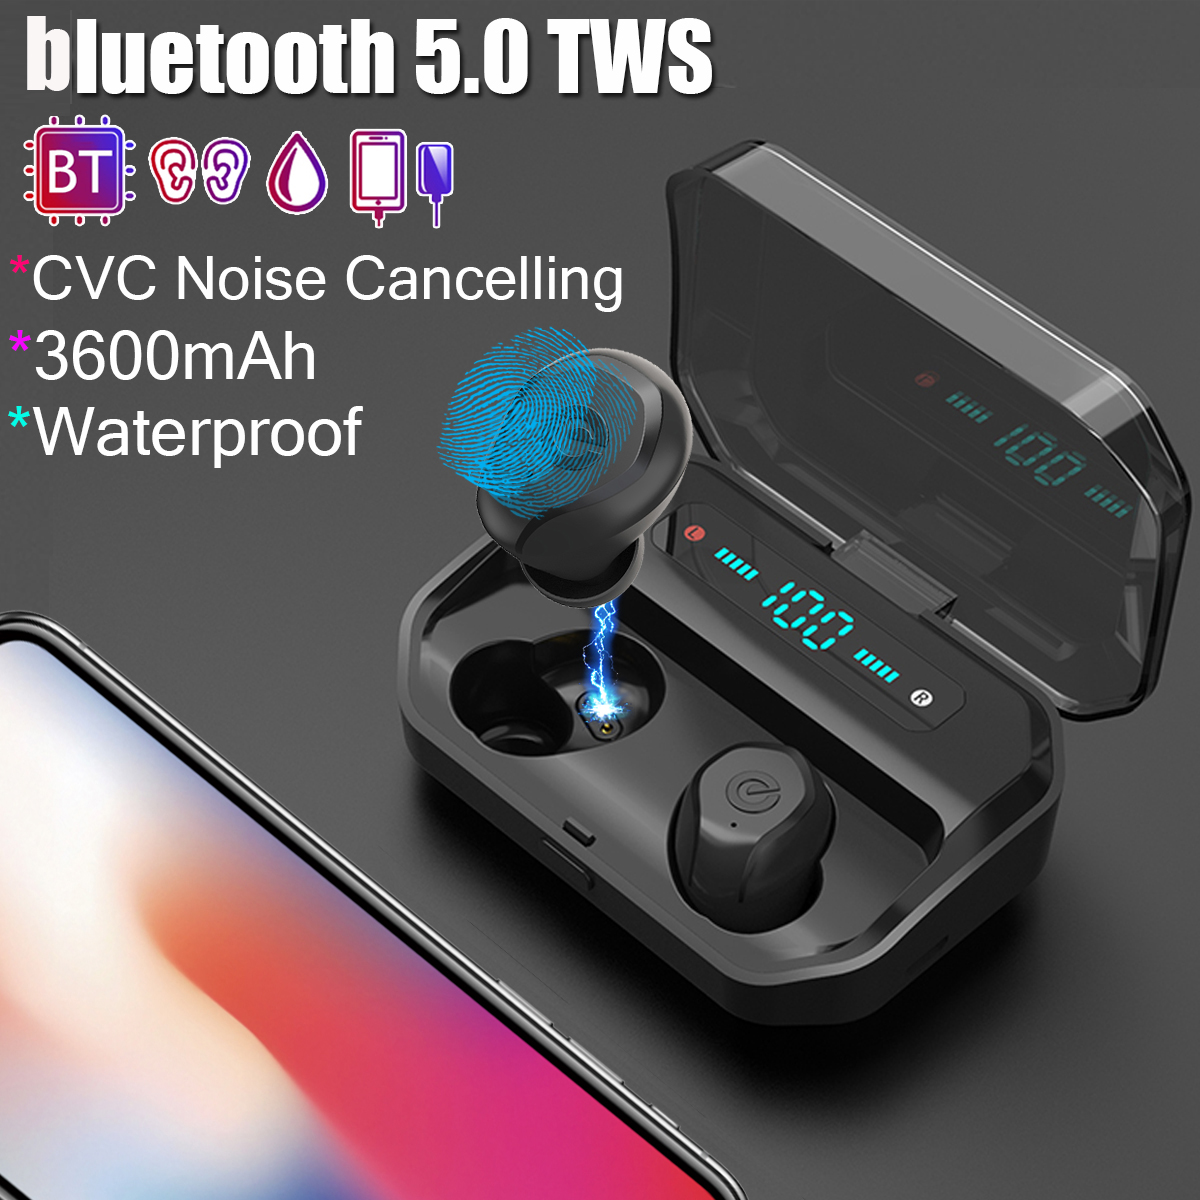 CVC 8.0 bluetooth 5.0 TWS Wireless Earbuds Smart for Touch IPX7 Waterproof Stereo Earphone 3500mAh Power Bank Wireless EarphoneCVC 8.0 bluetooth 5.0 TWS Wireless Earbuds Smart for Touch IPX7 Waterproof Stereo Earphone 3500mAh Power Bank Wireless Earphone